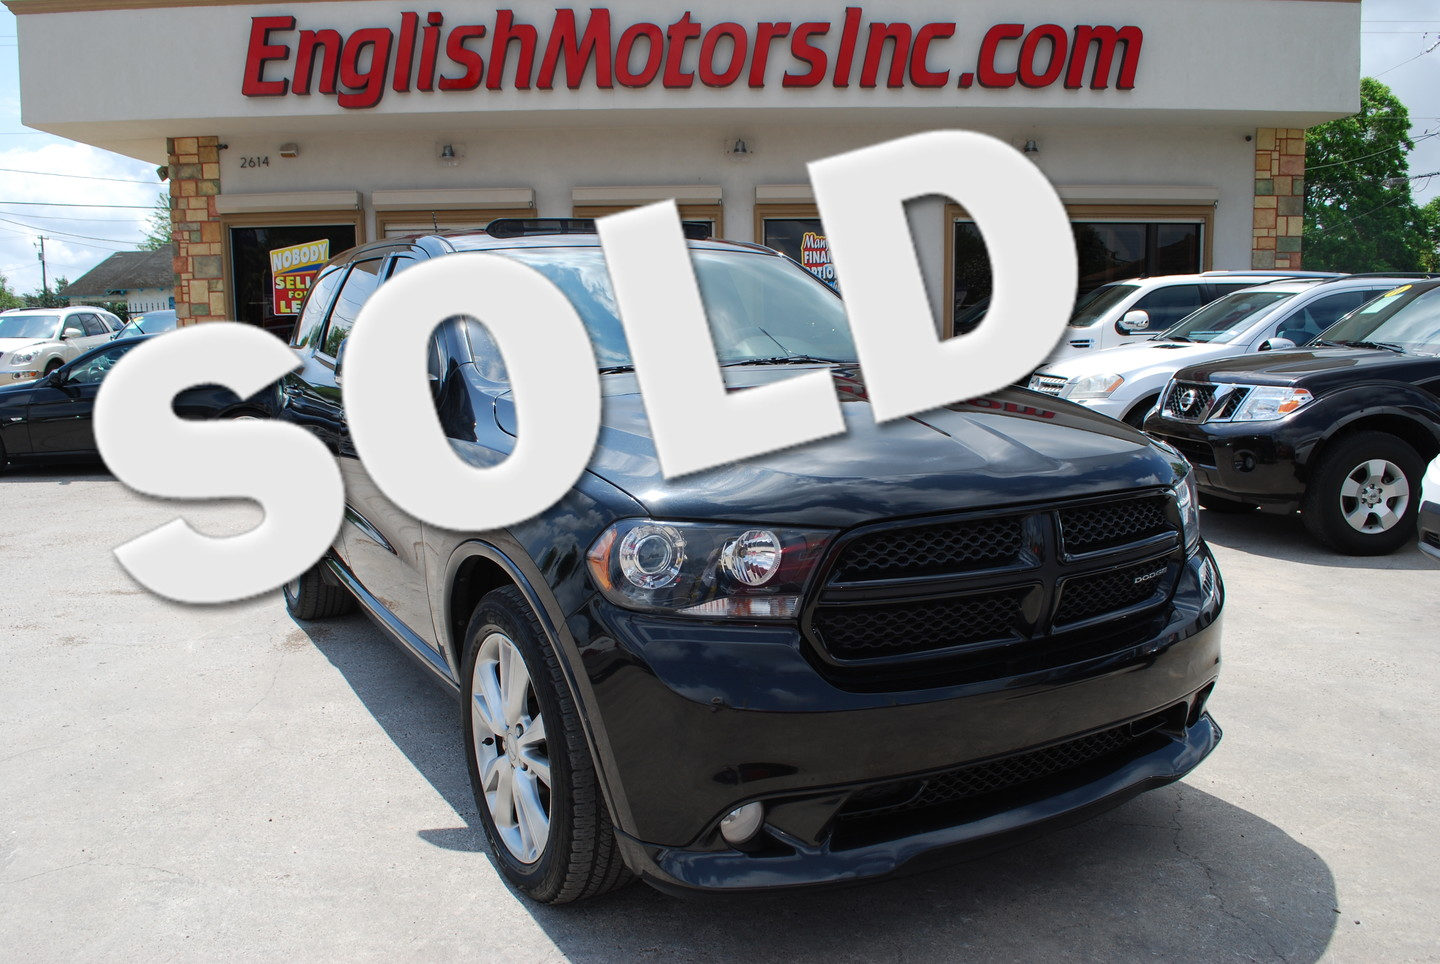 2012 dodge durango rt brownsville tx english motors English motors inc